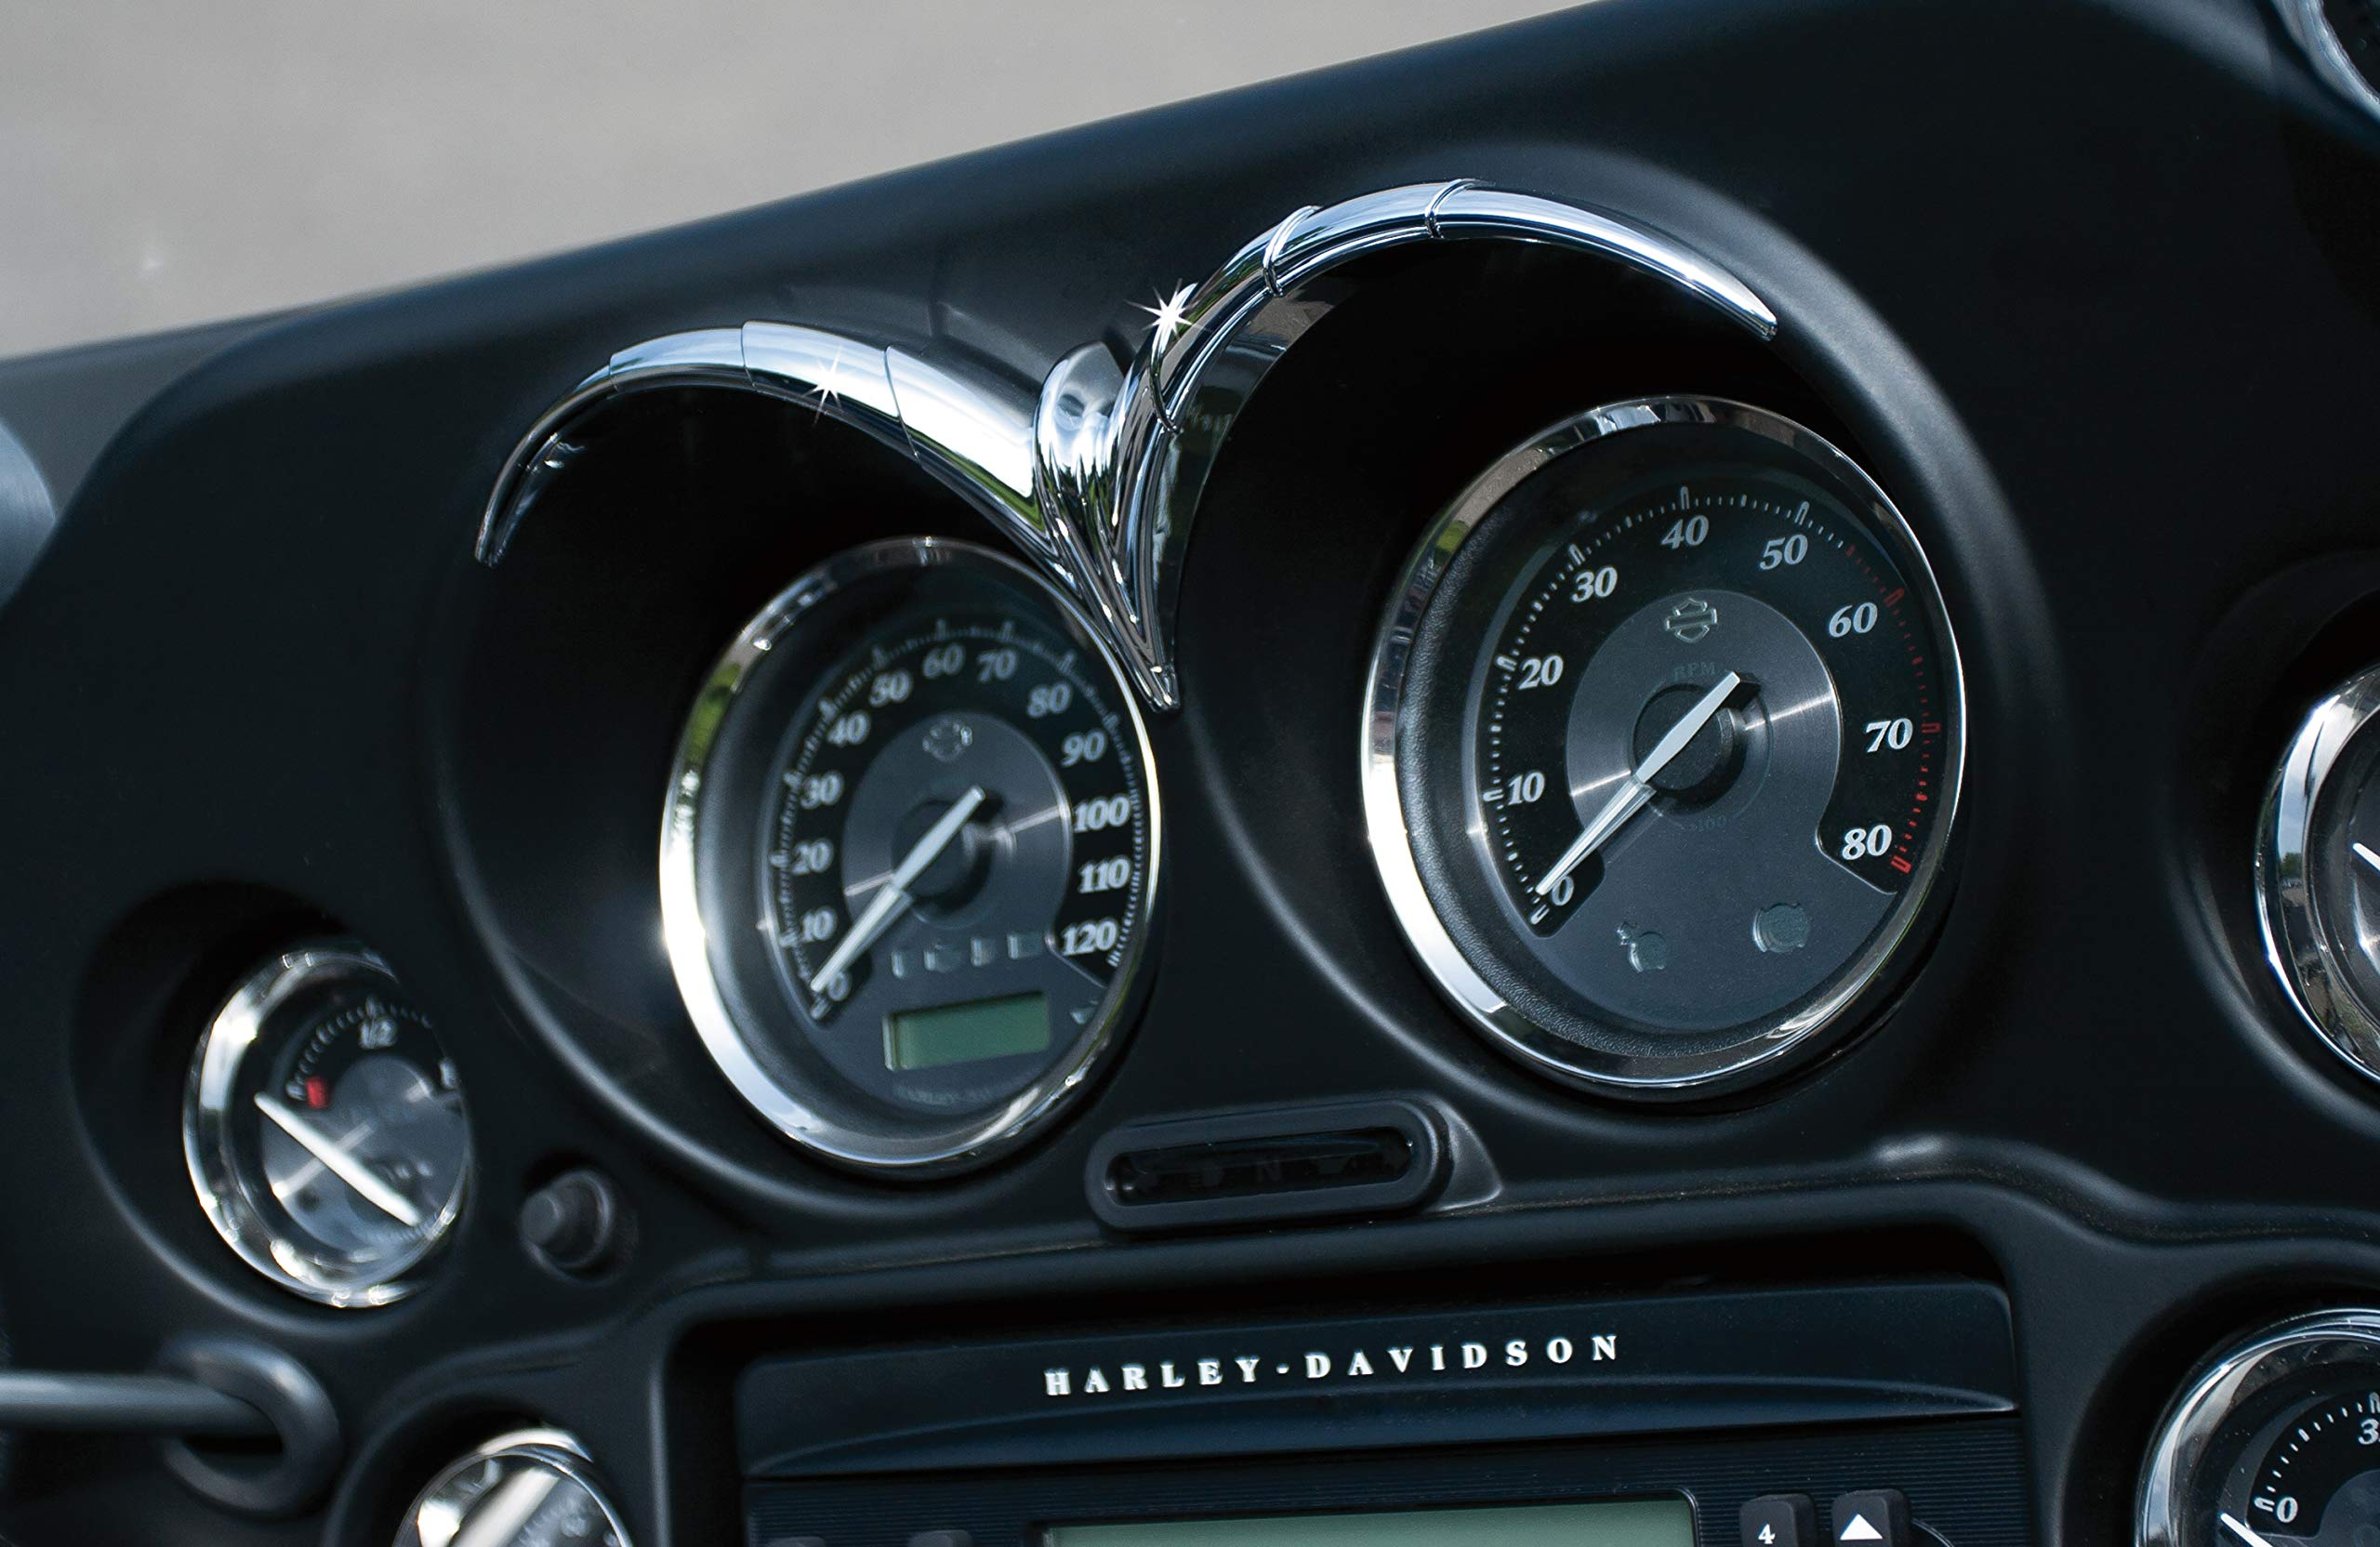 Kuryakyn 7746 Motorcycle Accent Accessory: Speedometer/Tachometer Brow Accent Trim for 1996-2013 Harley-Davidson Motorcycles, Chrome by Kuryakyn